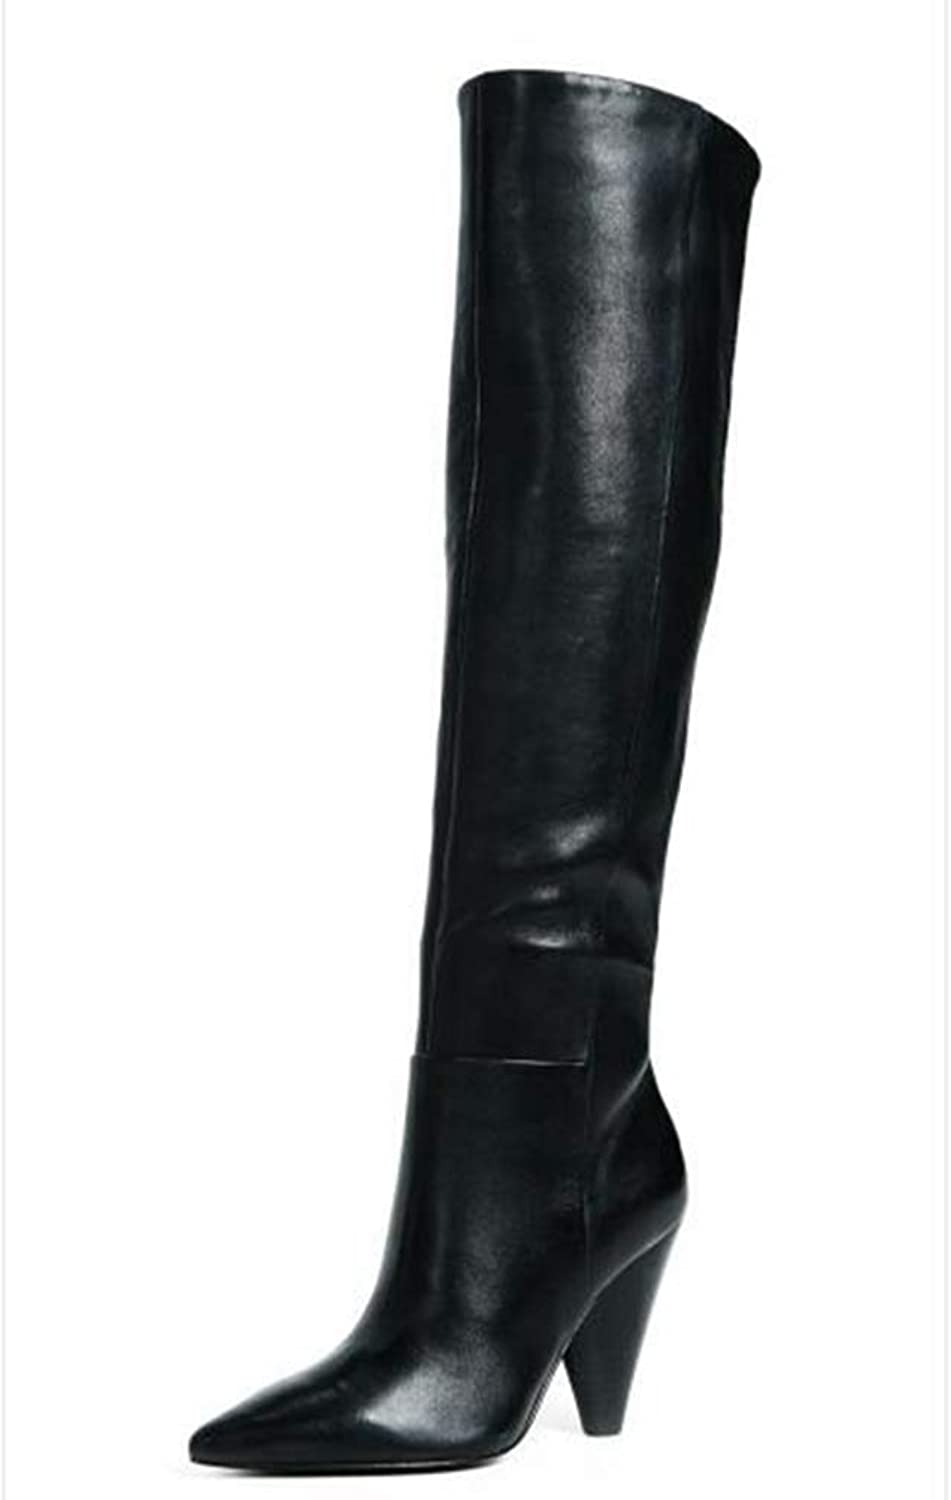 T-JULY Fashion Sexy High Heel Knee High Autumn Winter Female Lady Women Boots